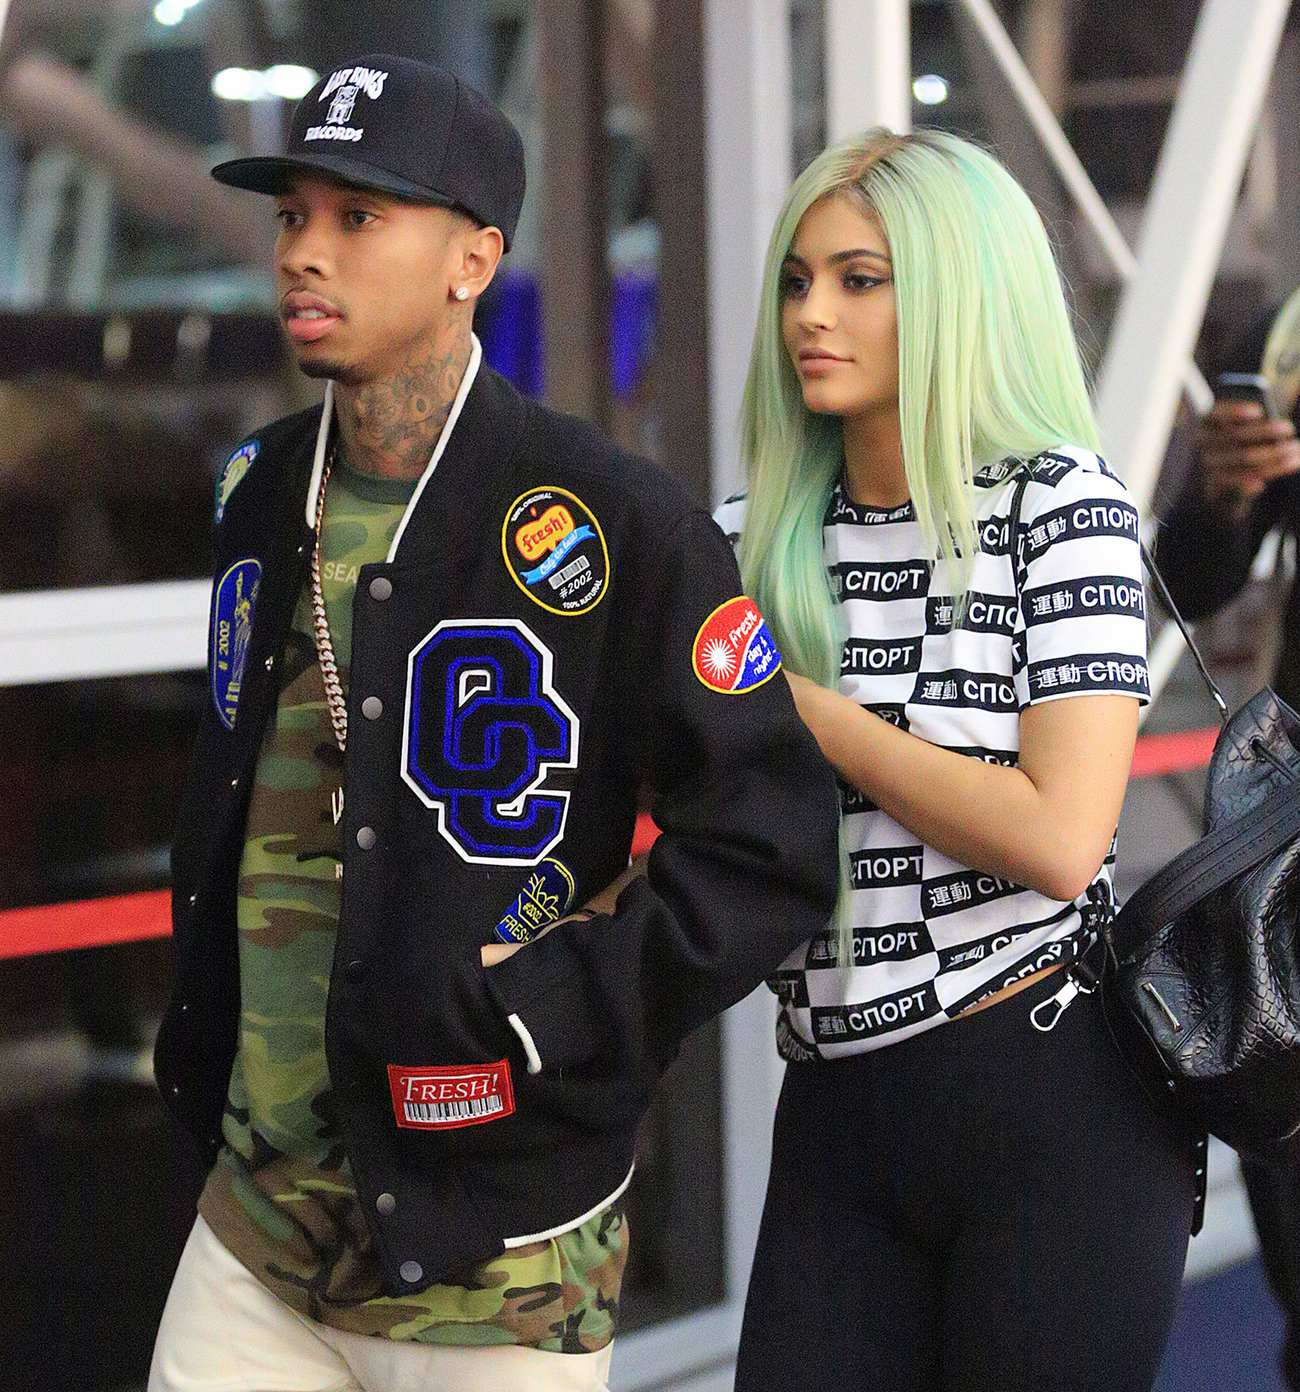 Kylie Jenner and Tyga Arrive at LAX Airport-4